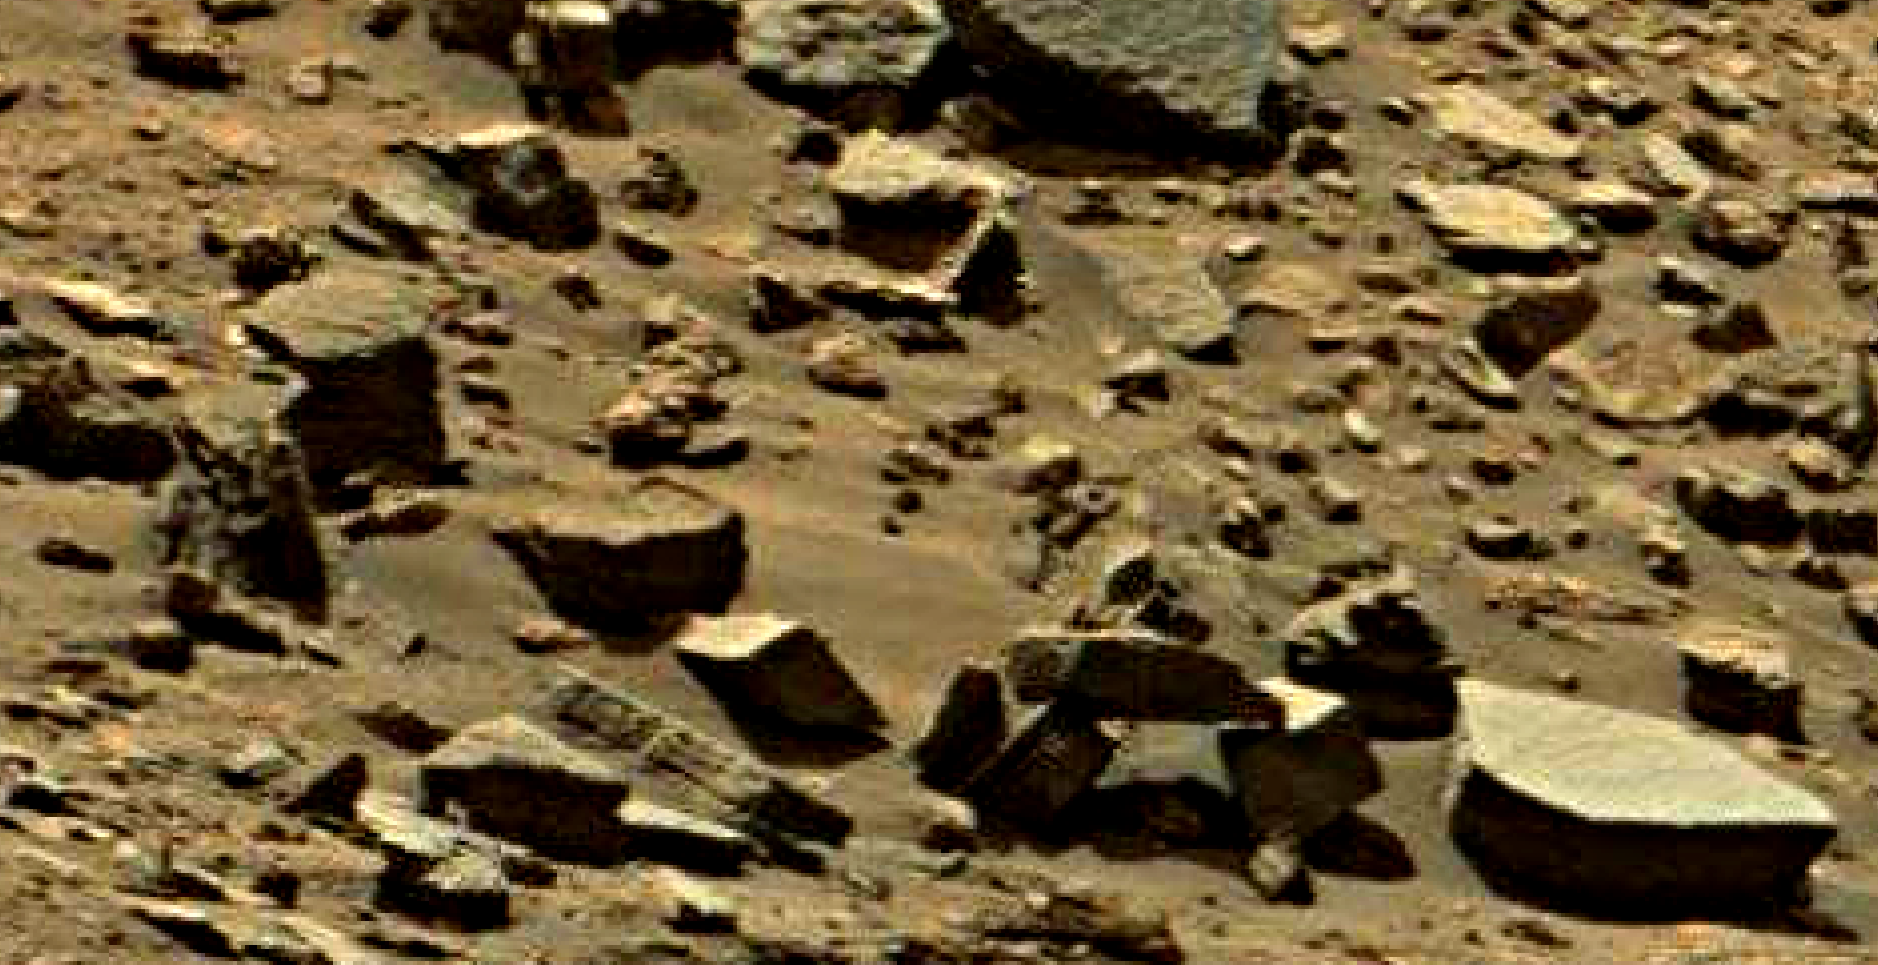 mars sol 1434 anomaly artifacts 9 was life on mars